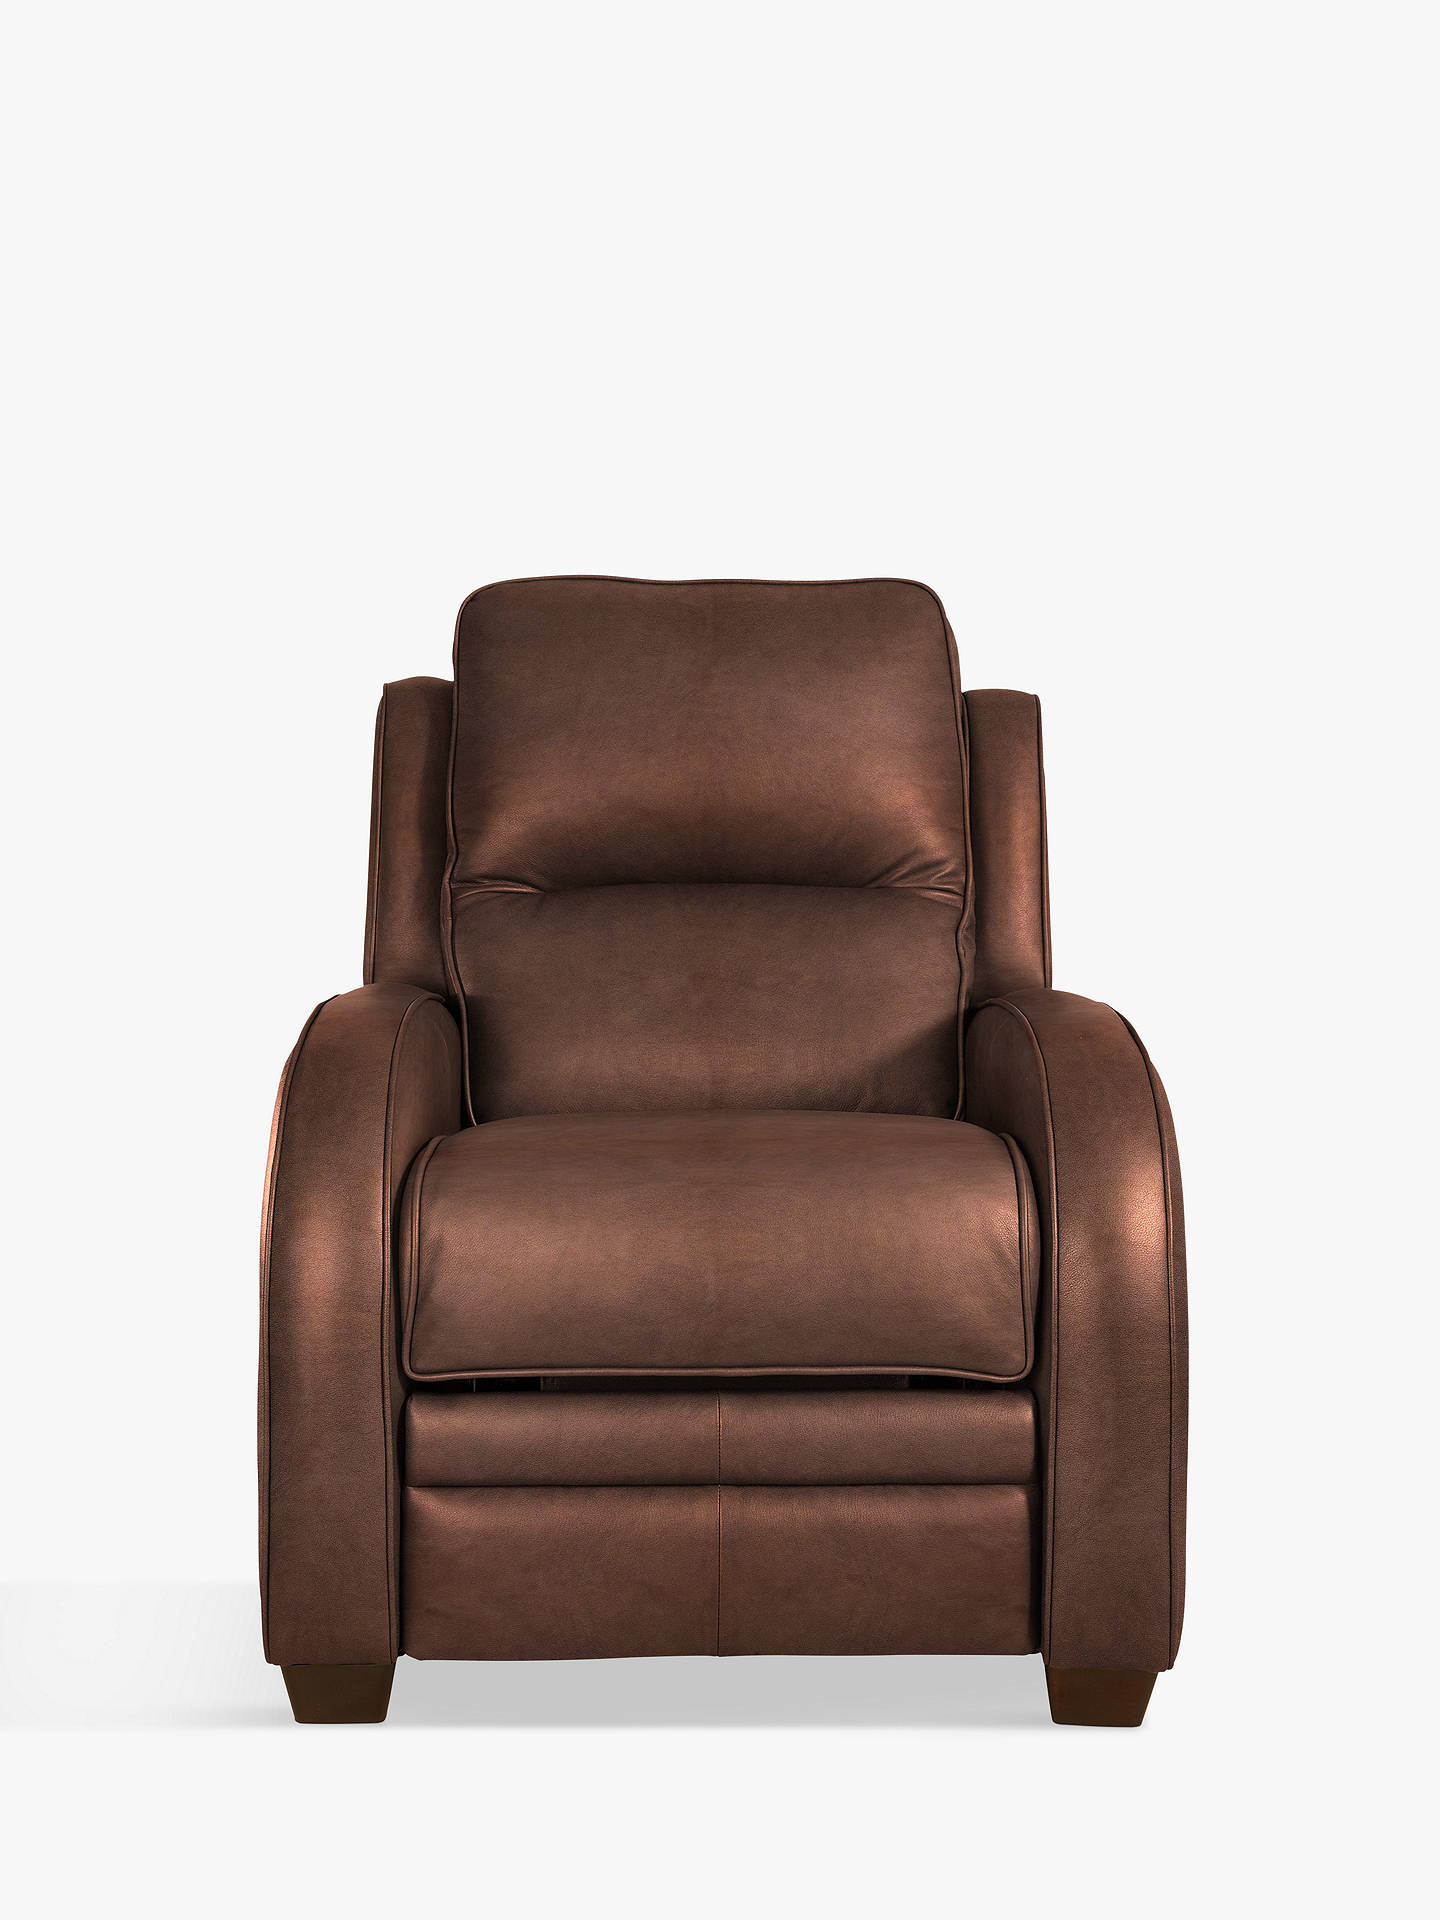 Buy Parker Knoll Charleston Leather Power Recliner Armchair, London Saddle Leather Online at johnlewis.com